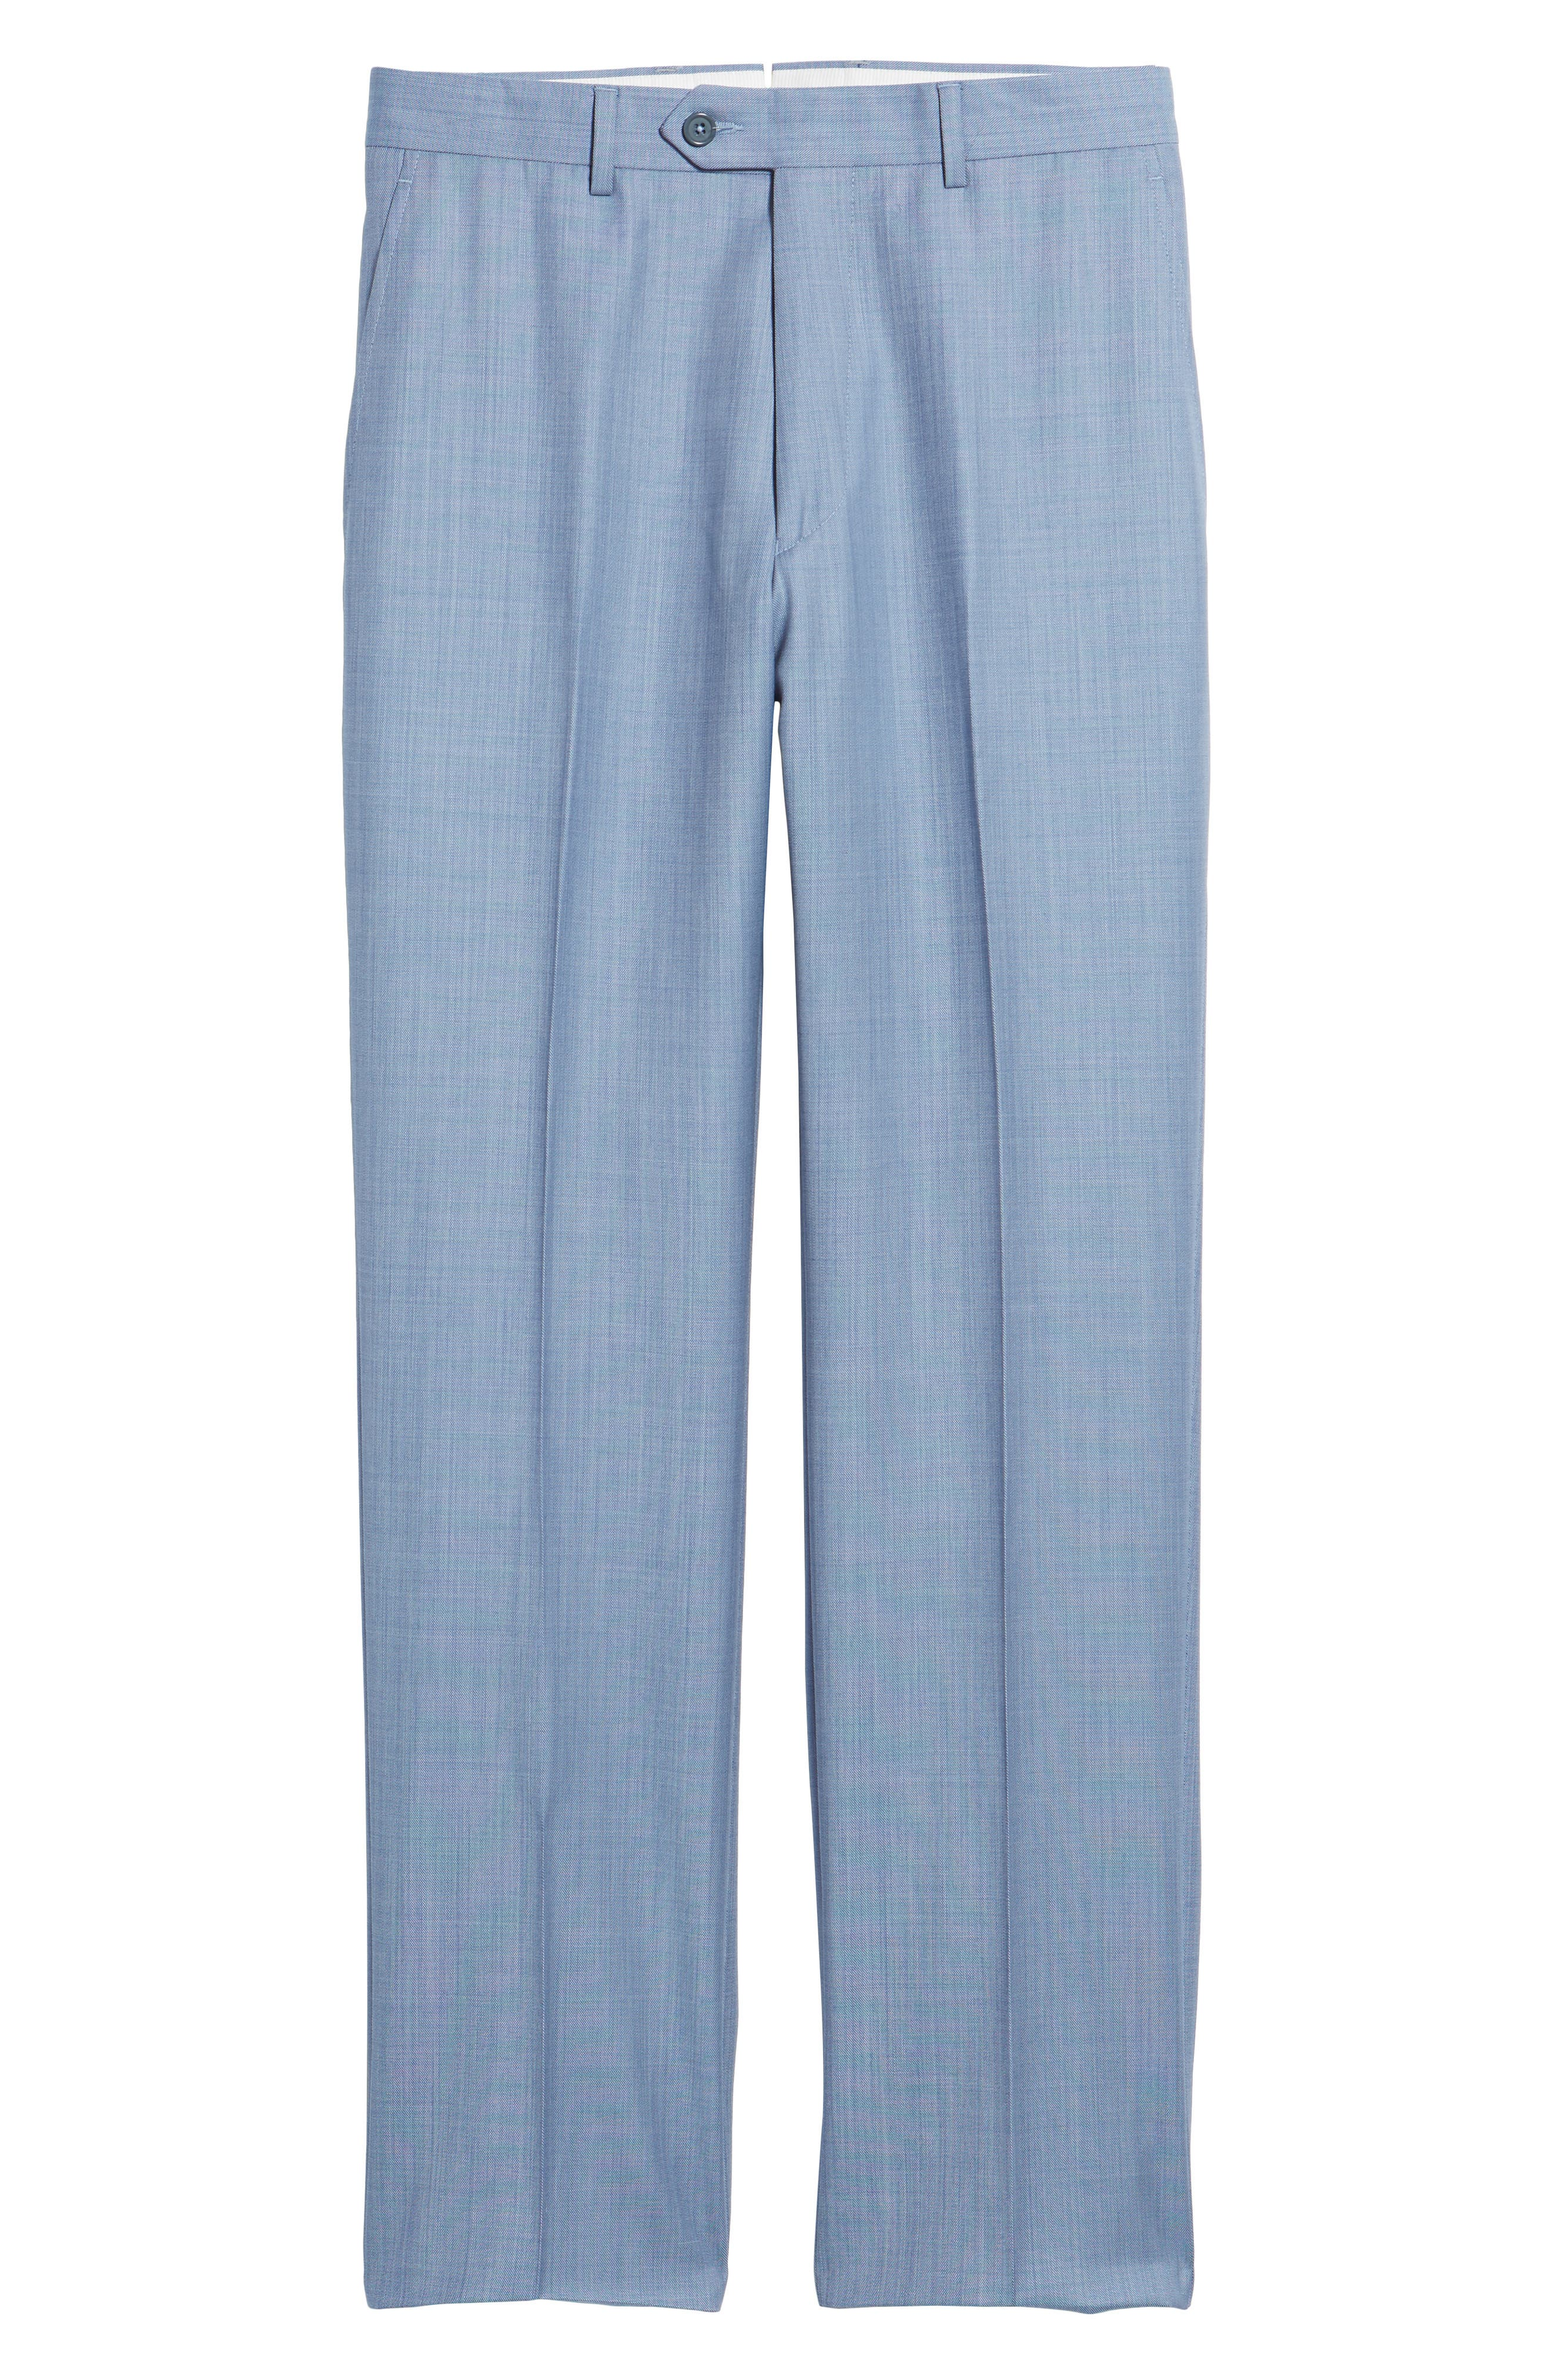 Flat Front Solid Wool Trousers,                             Alternate thumbnail 18, color,